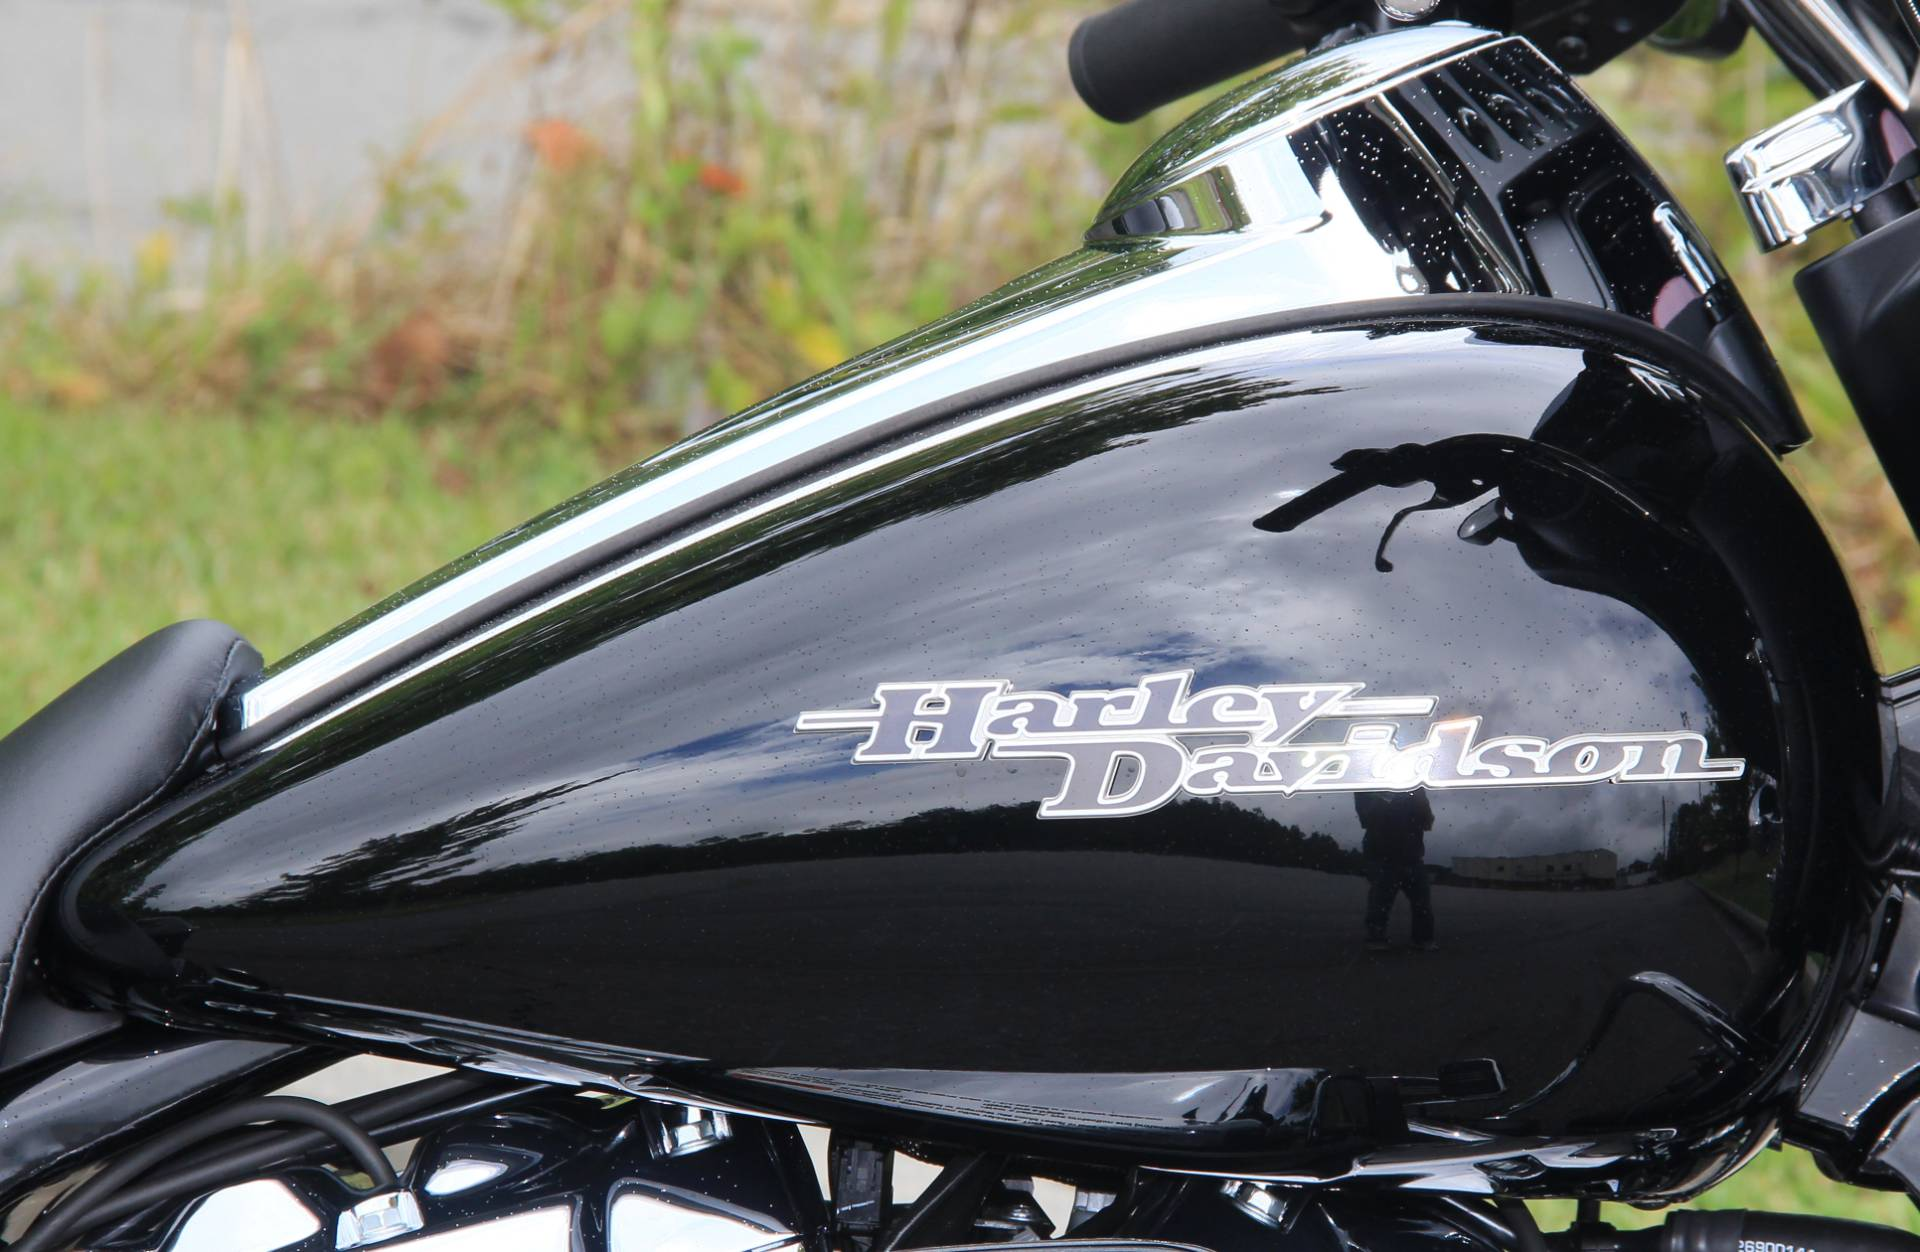 2020 Harley-Davidson Street Glide in Cartersville, Georgia - Photo 11